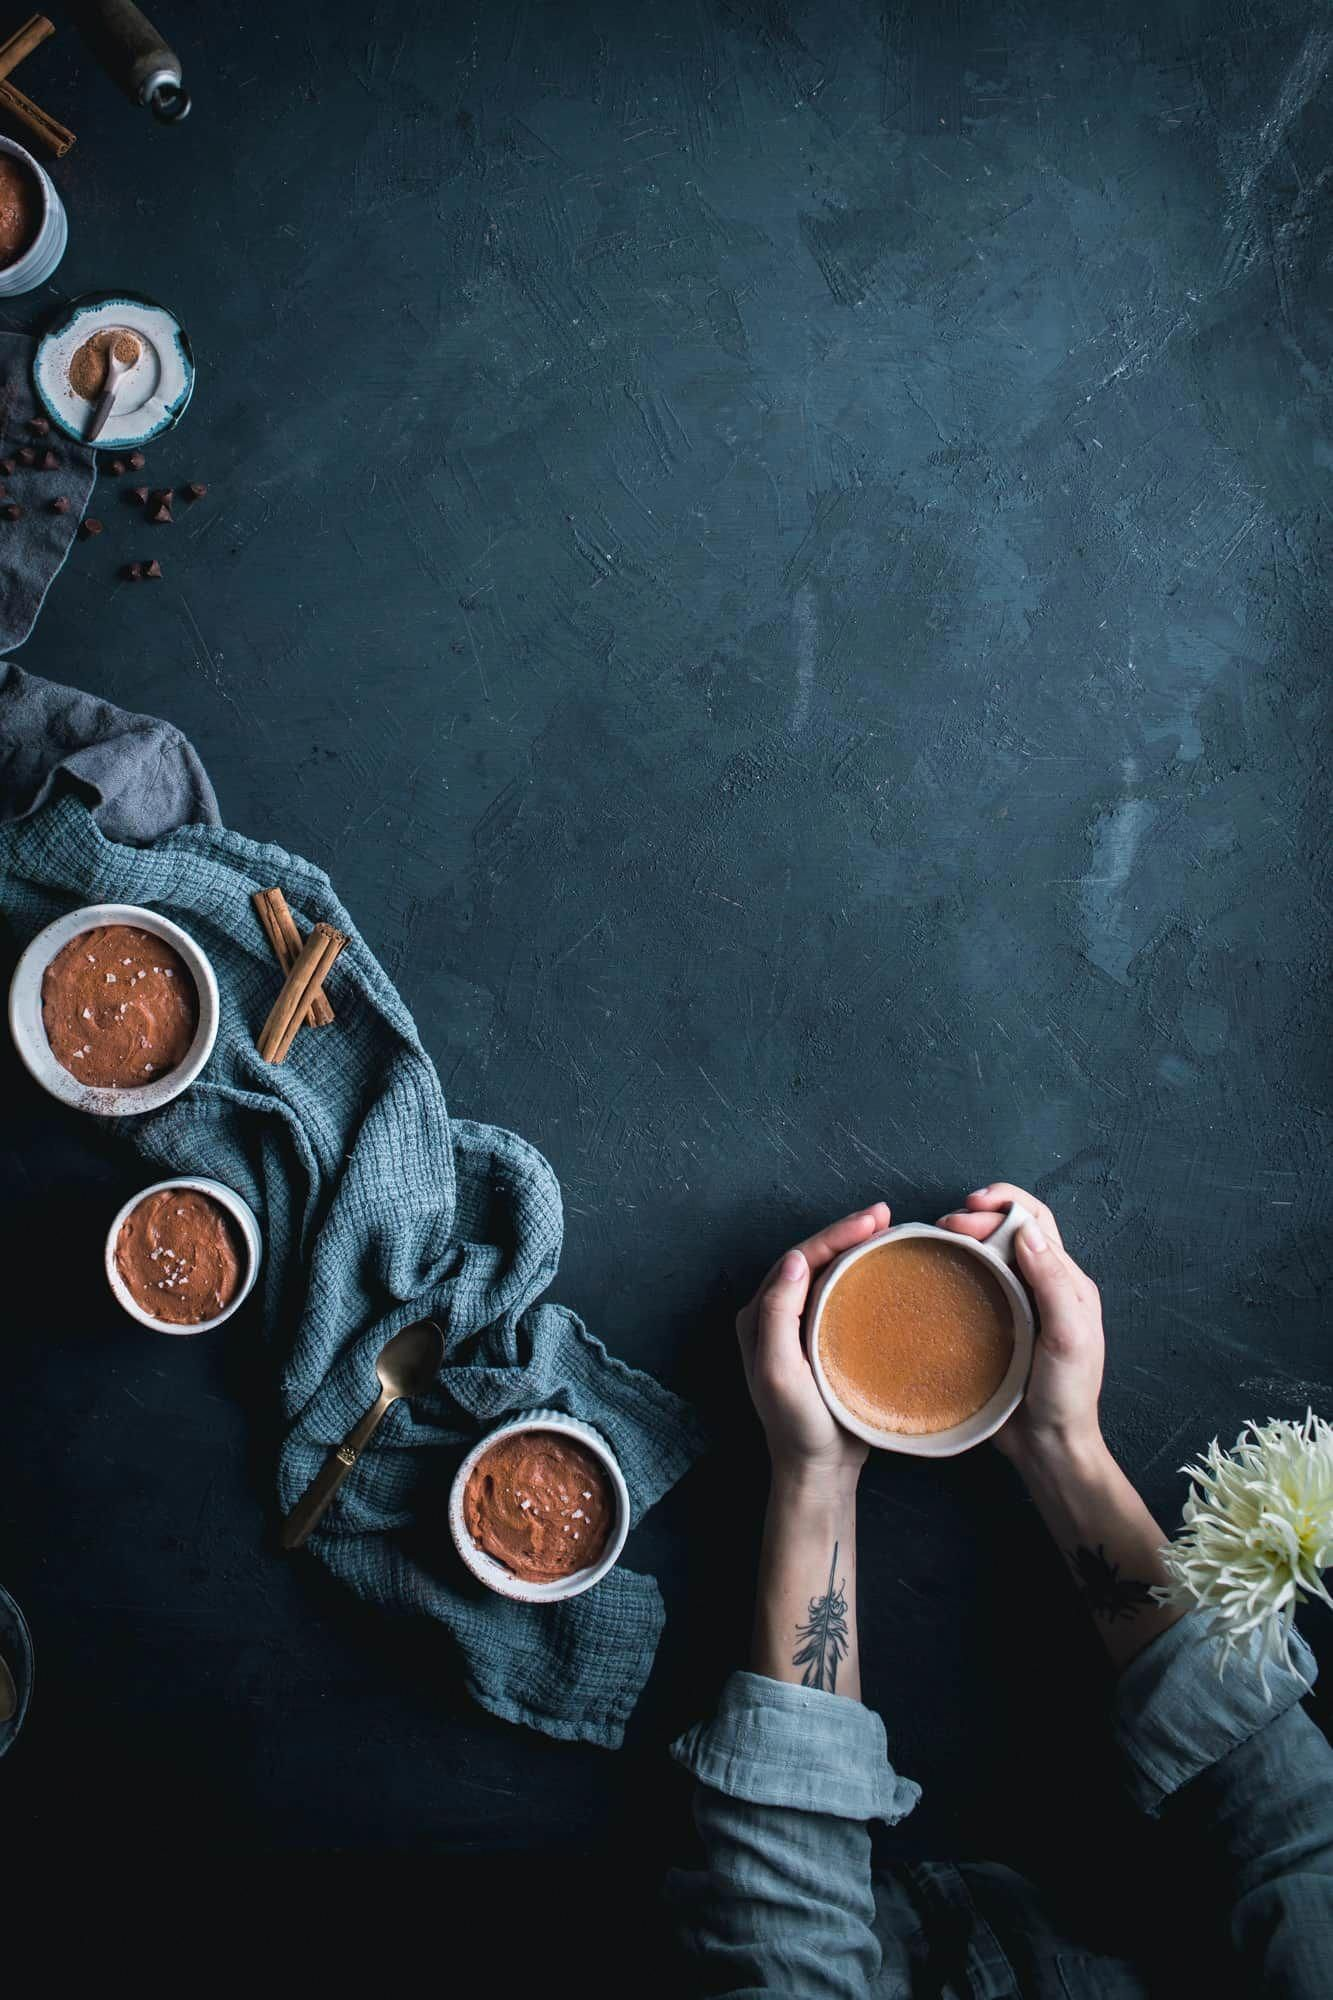 Spiced Coffee and Chocolate Mousse by Eva Kosmas Flores  This chocolate mousse r...,  #Chocolate #coffee #Eva #Flores #Kosmas #Mousse #SeaFoodphotography #Spiced